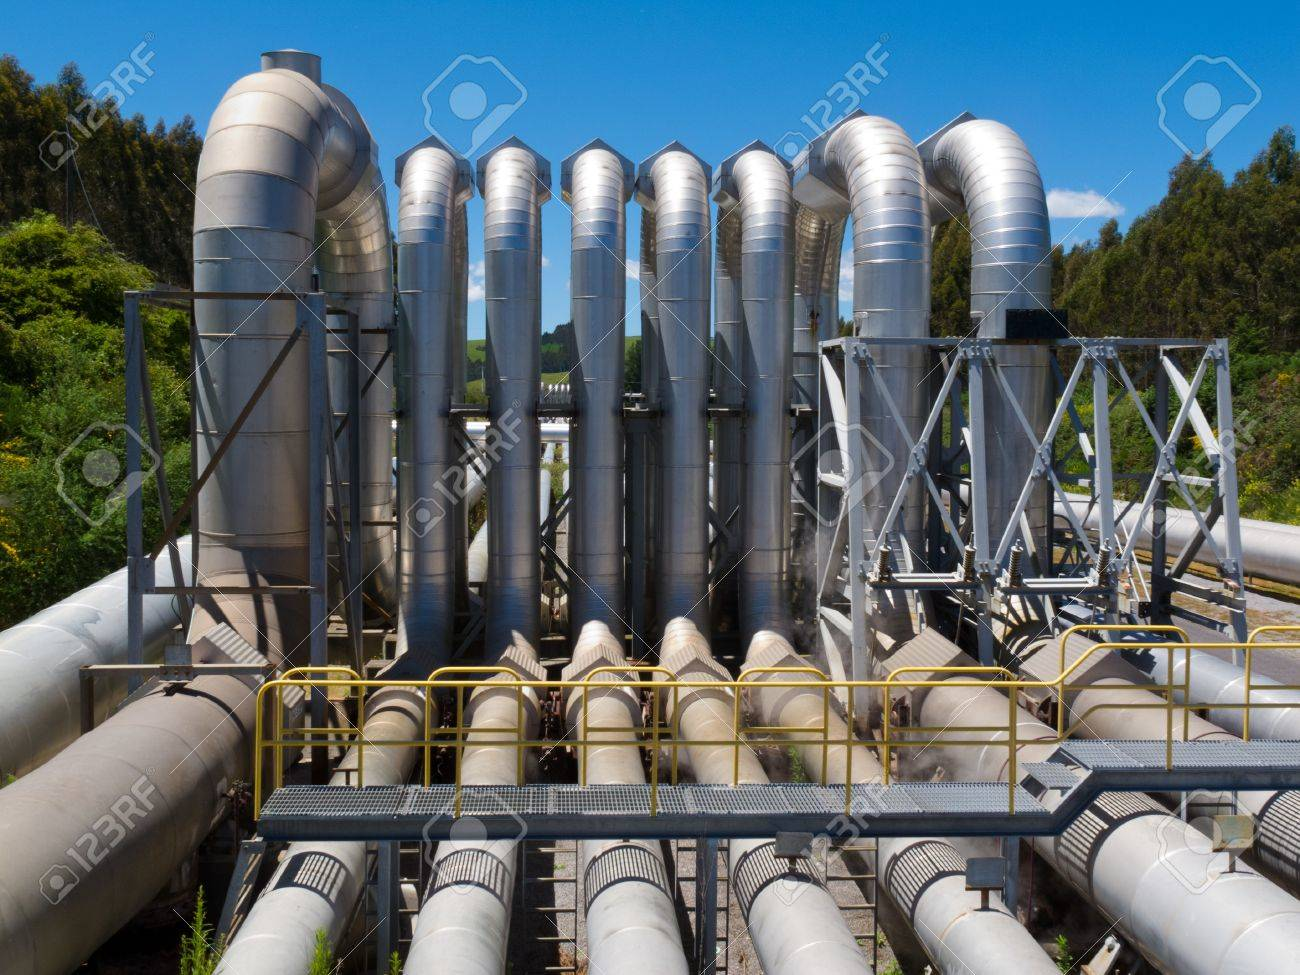 Background of a pipeline installation for distribution and supply